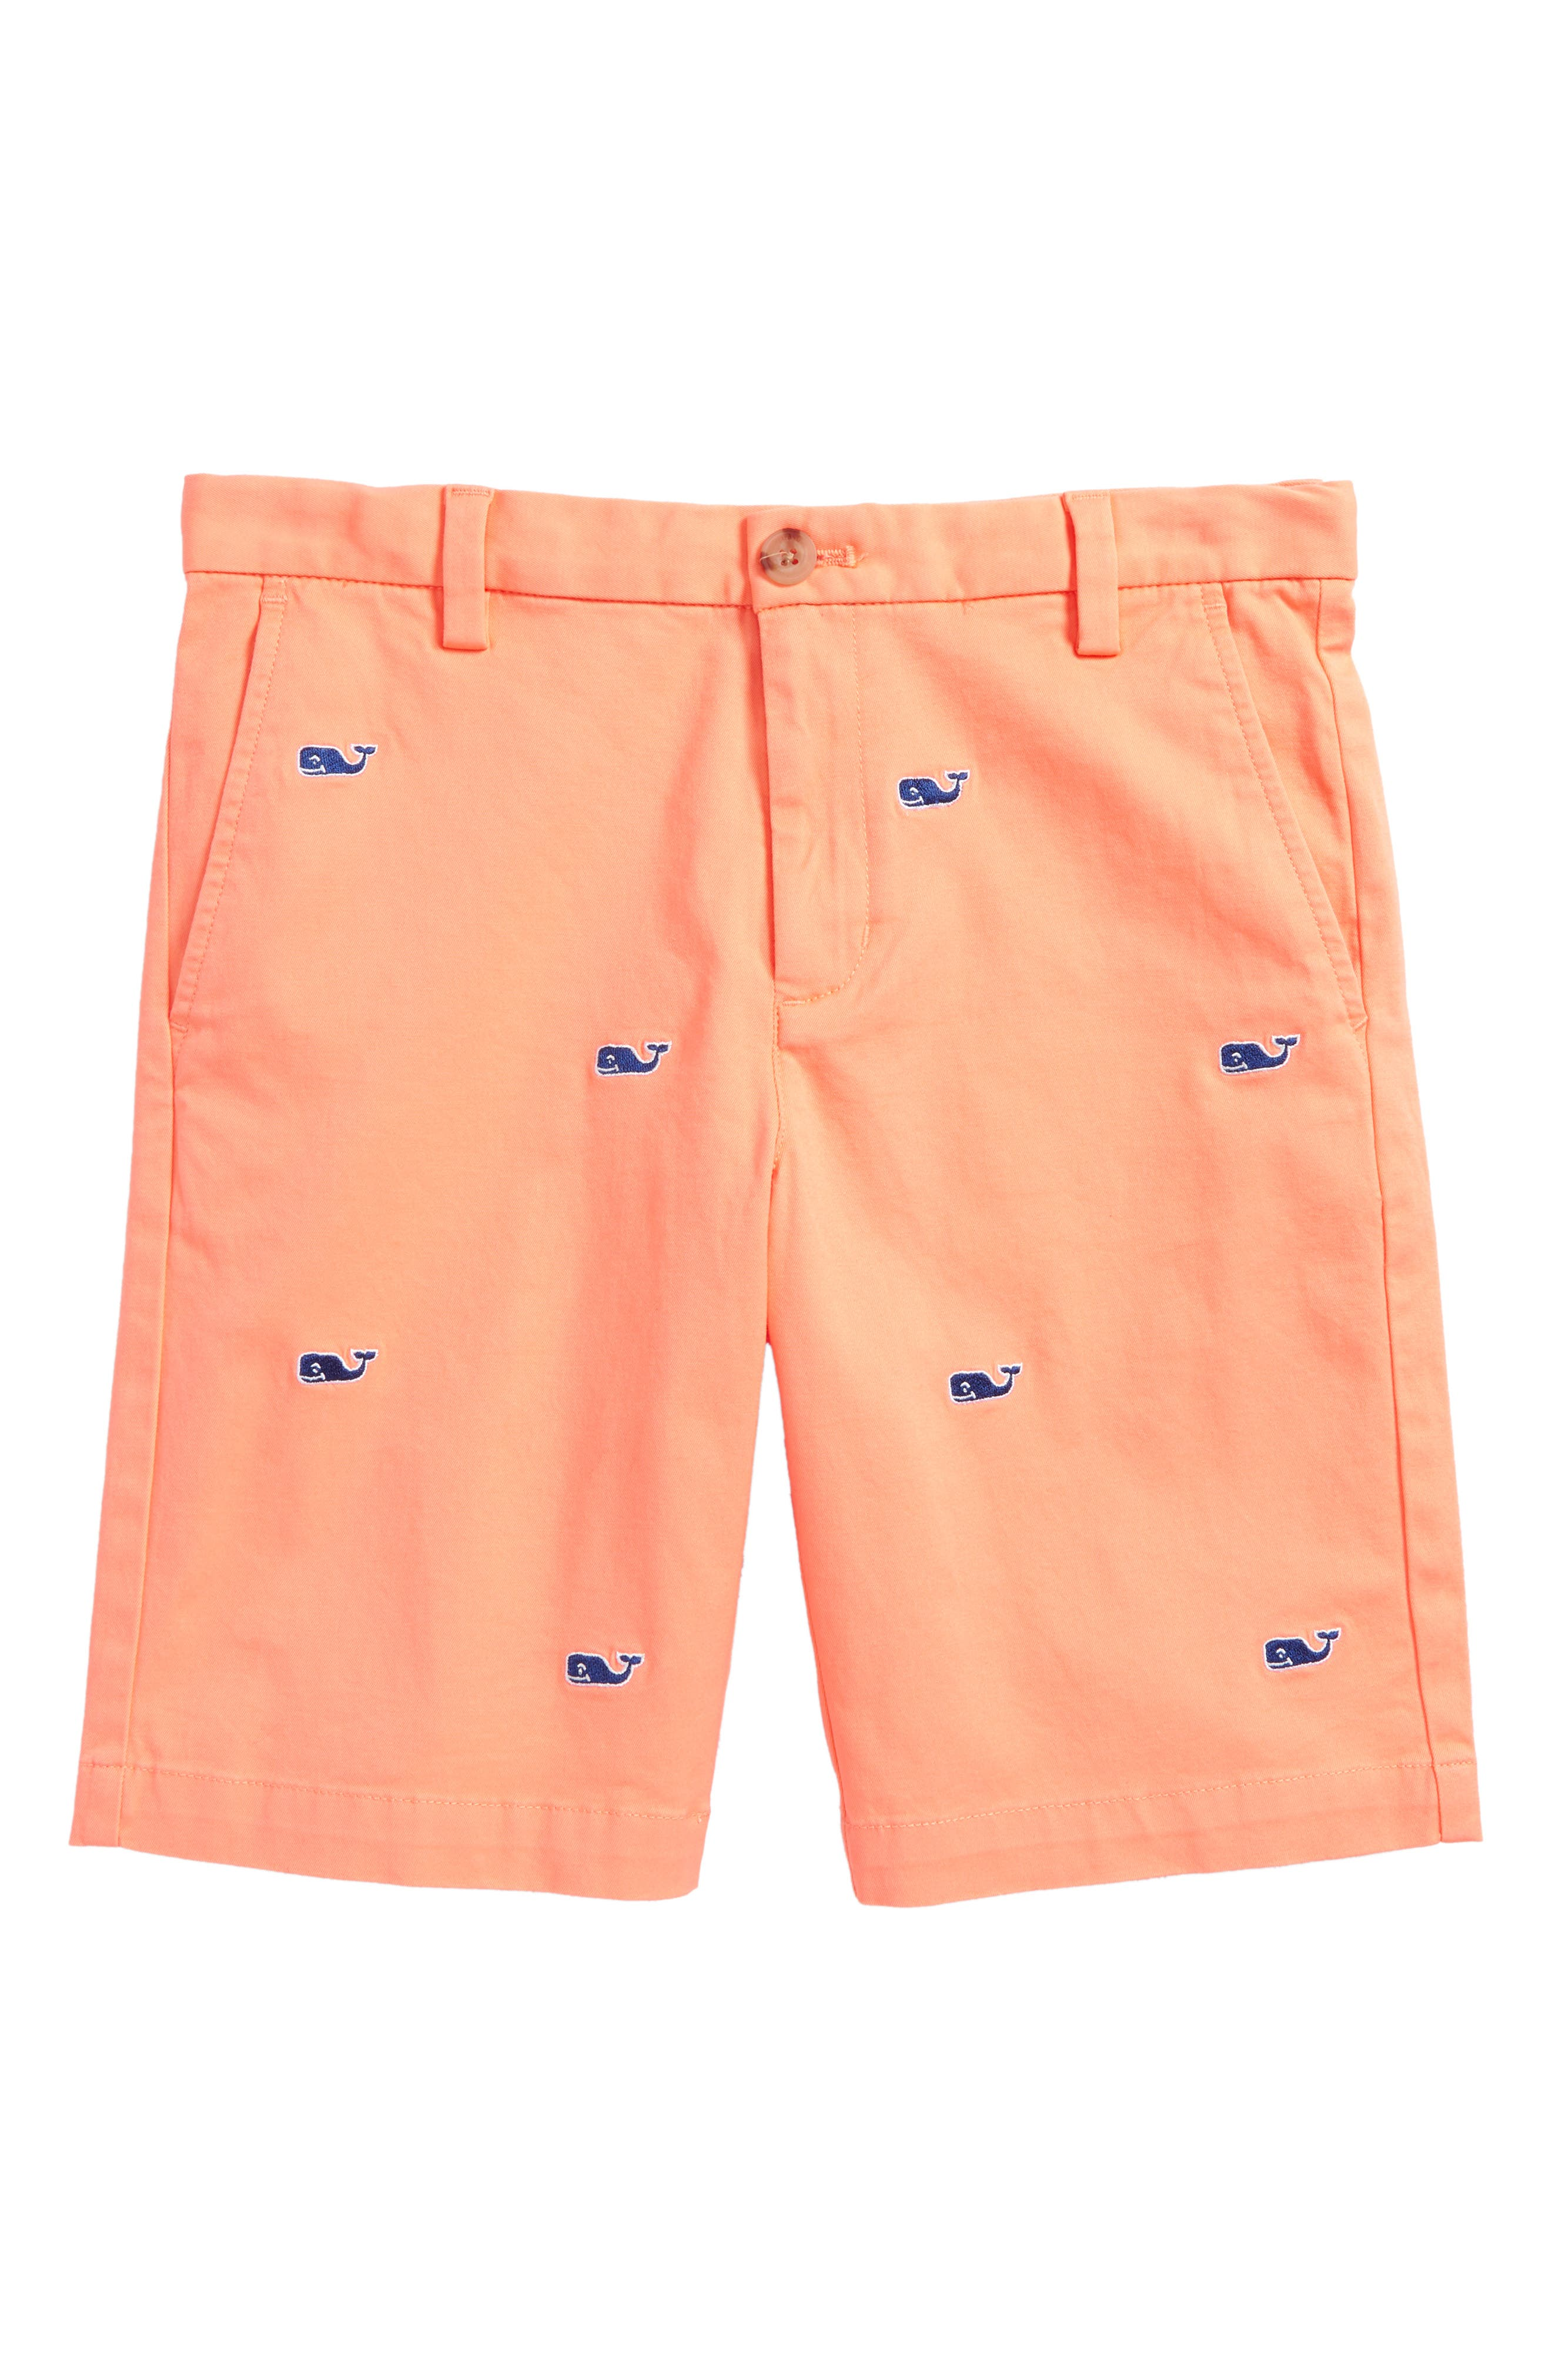 Stretch Breaker Whale Embroidered Shorts,                             Main thumbnail 1, color,                             Light Neon Melon